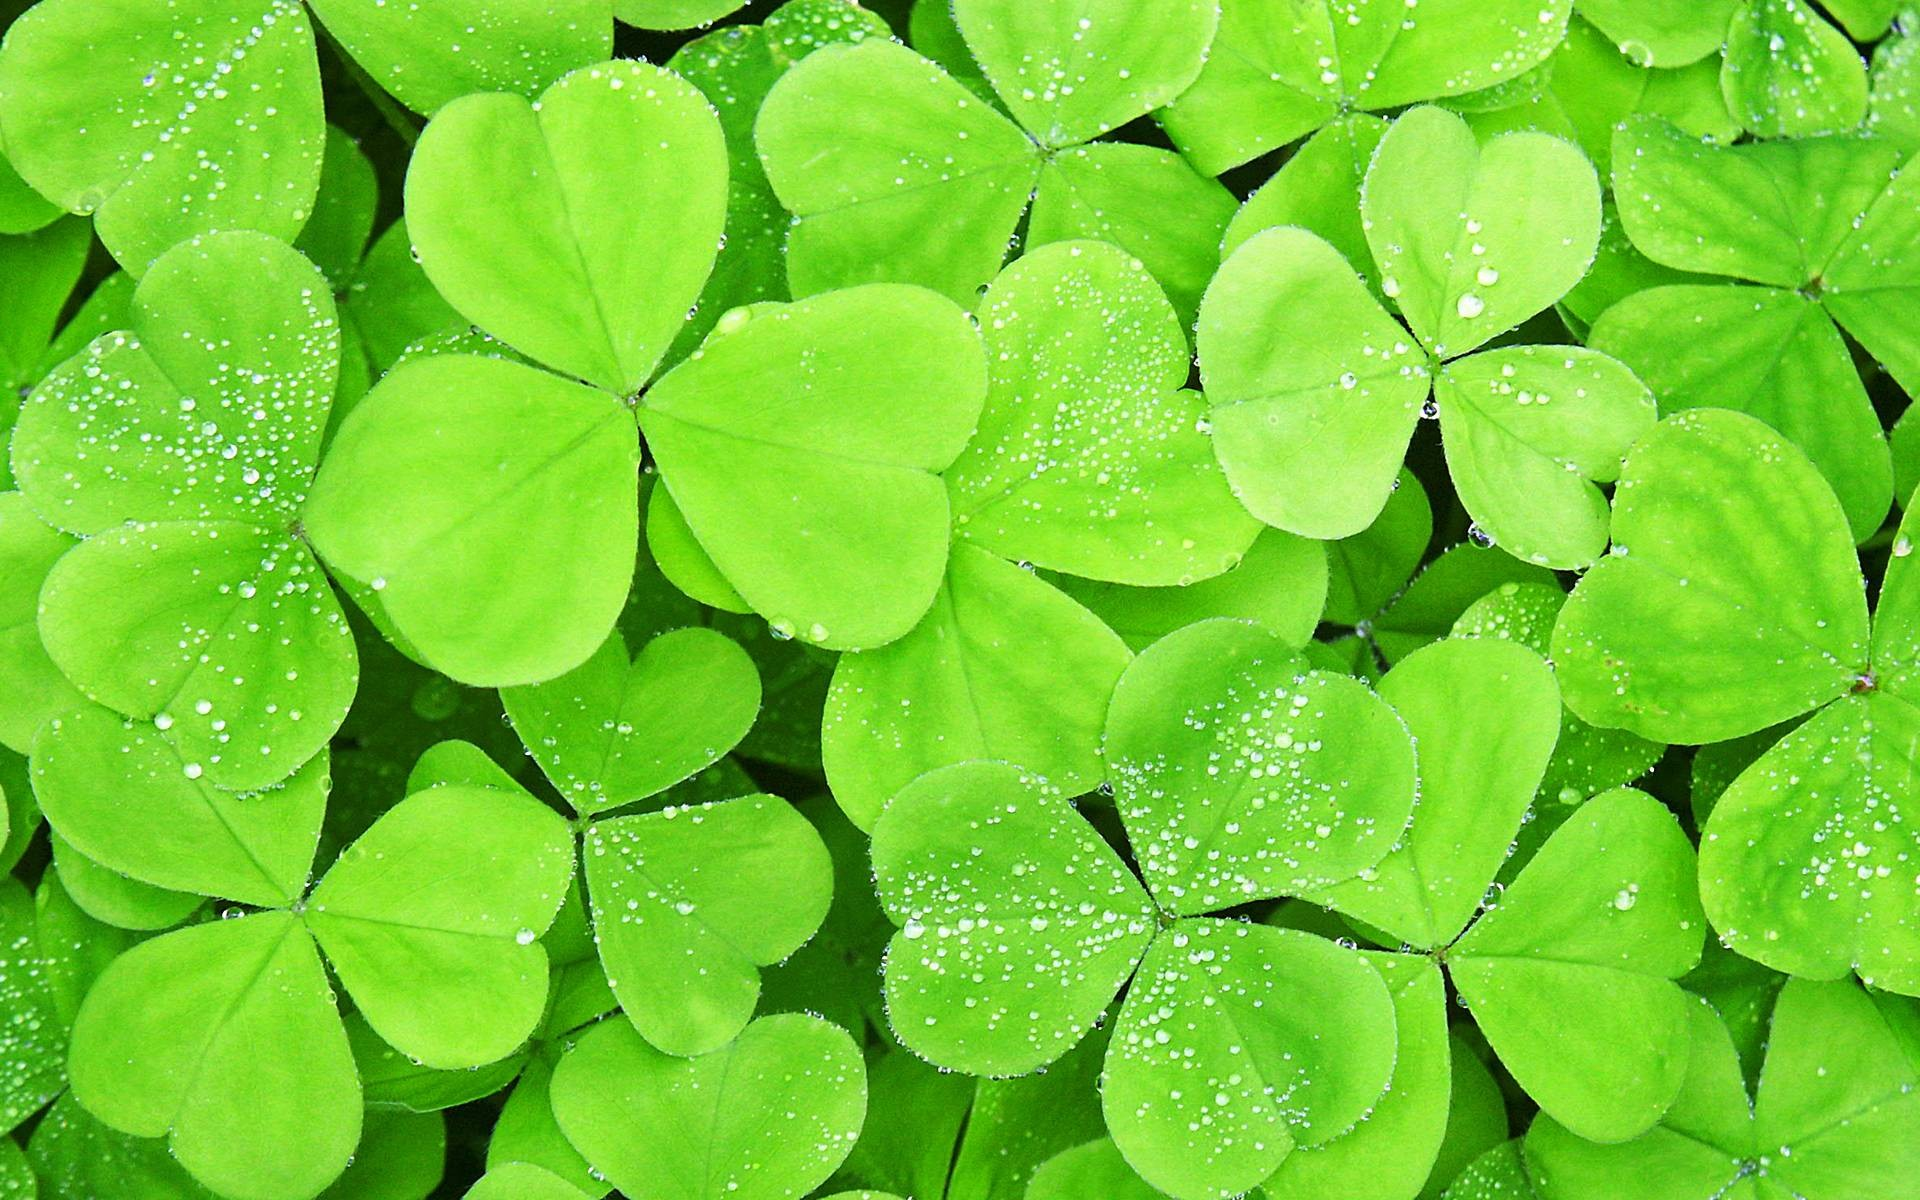 on Clovers Wallpaper Dew on Clovers iPhone Wallpaper Dew on Clovers 1920x1200